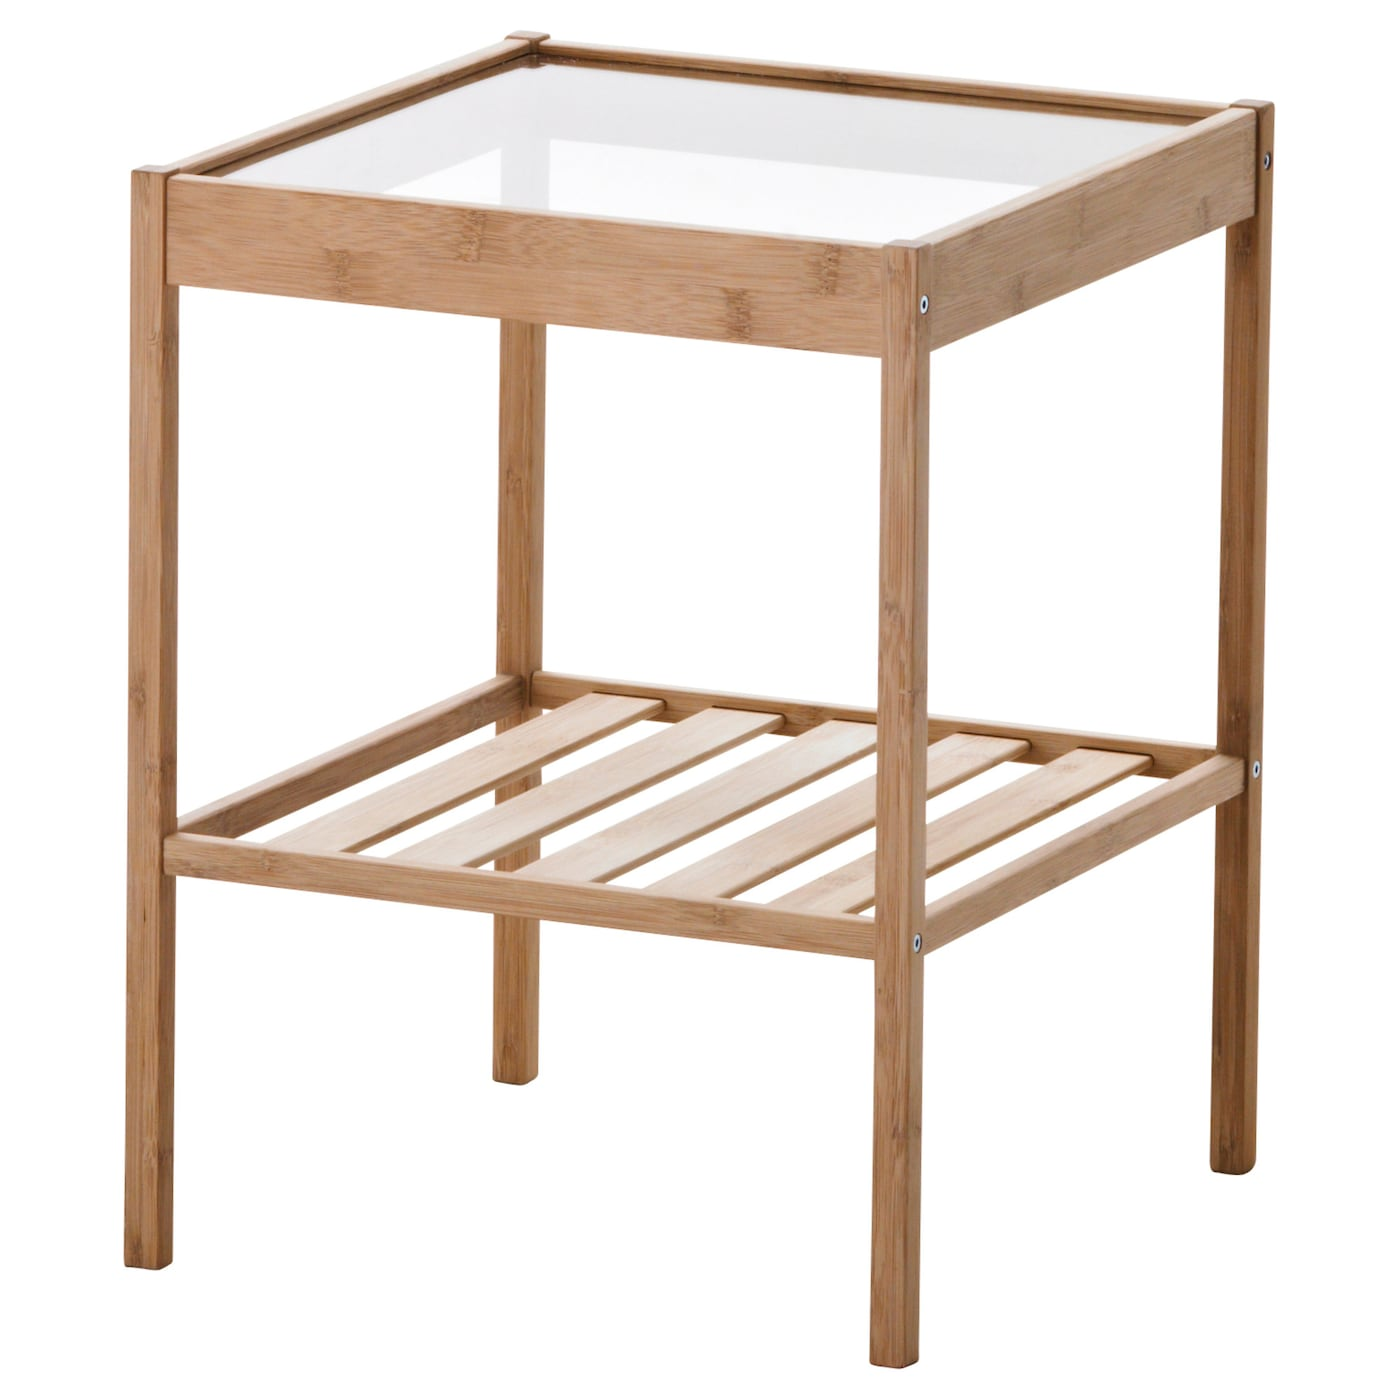 Nesna bedside table 36x35 cm ikea - Table balcon suspendue ikea ...